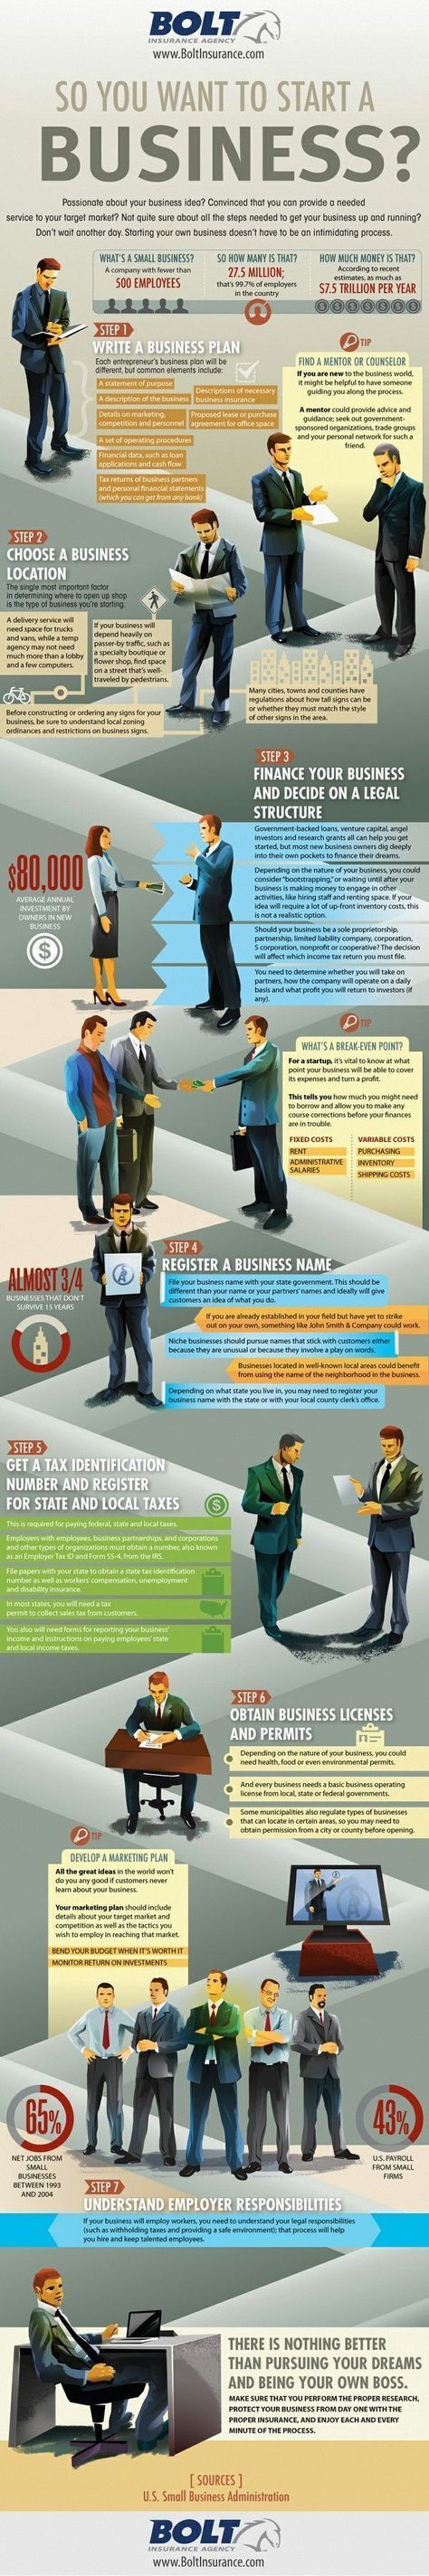 So You Want To Start A Business success business infographic entrepreneur startup startups small business entrepreneur tips tips for entrepreneur startup ideas startup tips small businesses business plan - Tap the link now to Learn how I made it to 1 million in sales in 5 months with e-commerce! I'll give you the 3 advertising phases I did to make it for FREE!